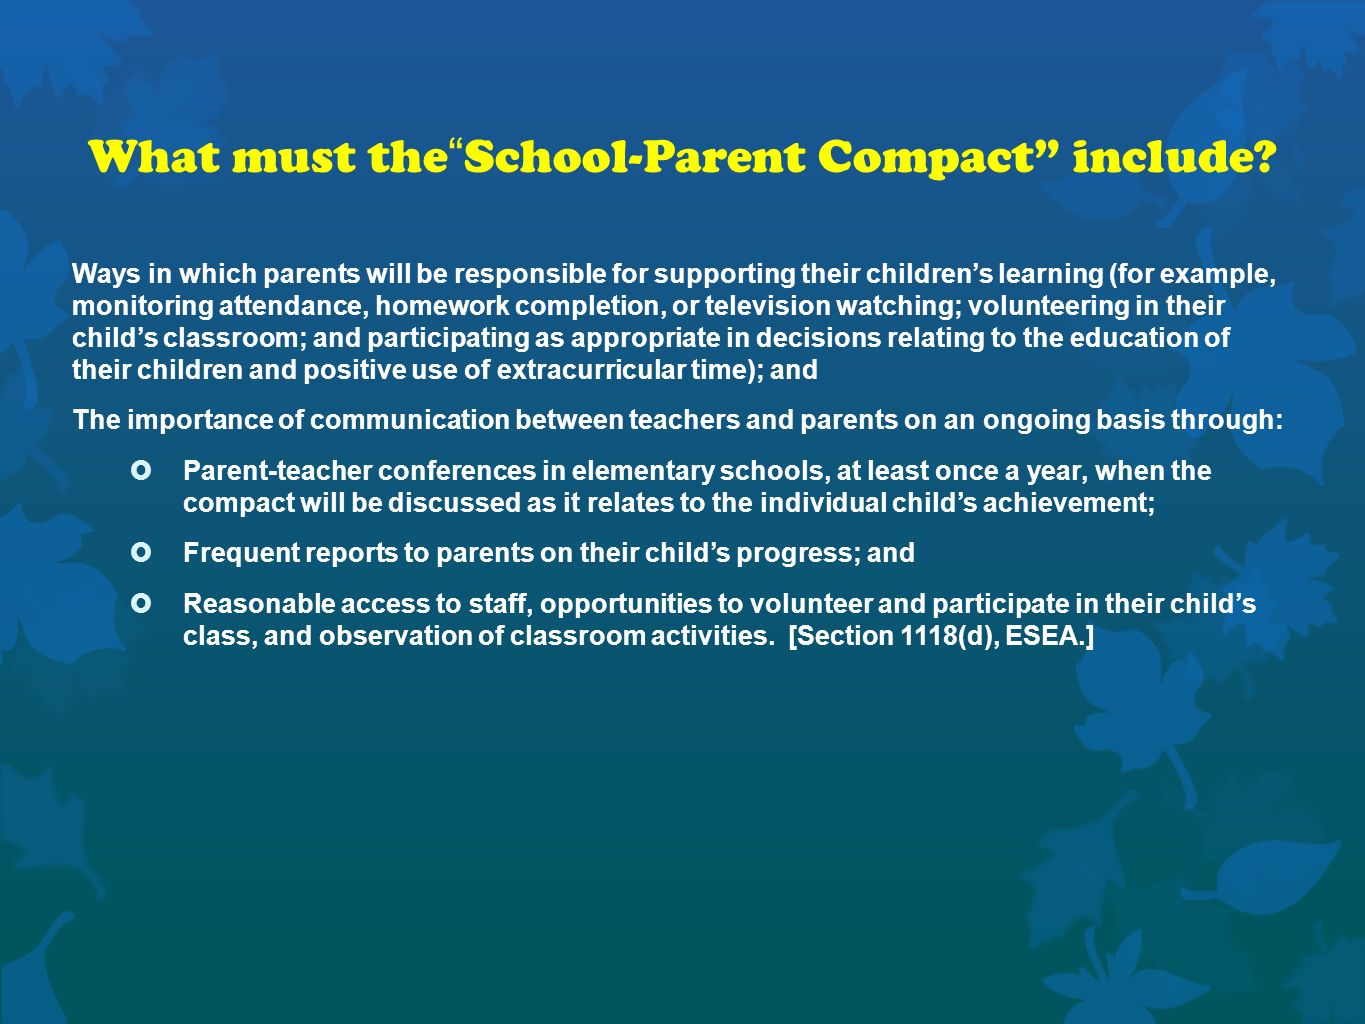 What must the School-Parent Compact include